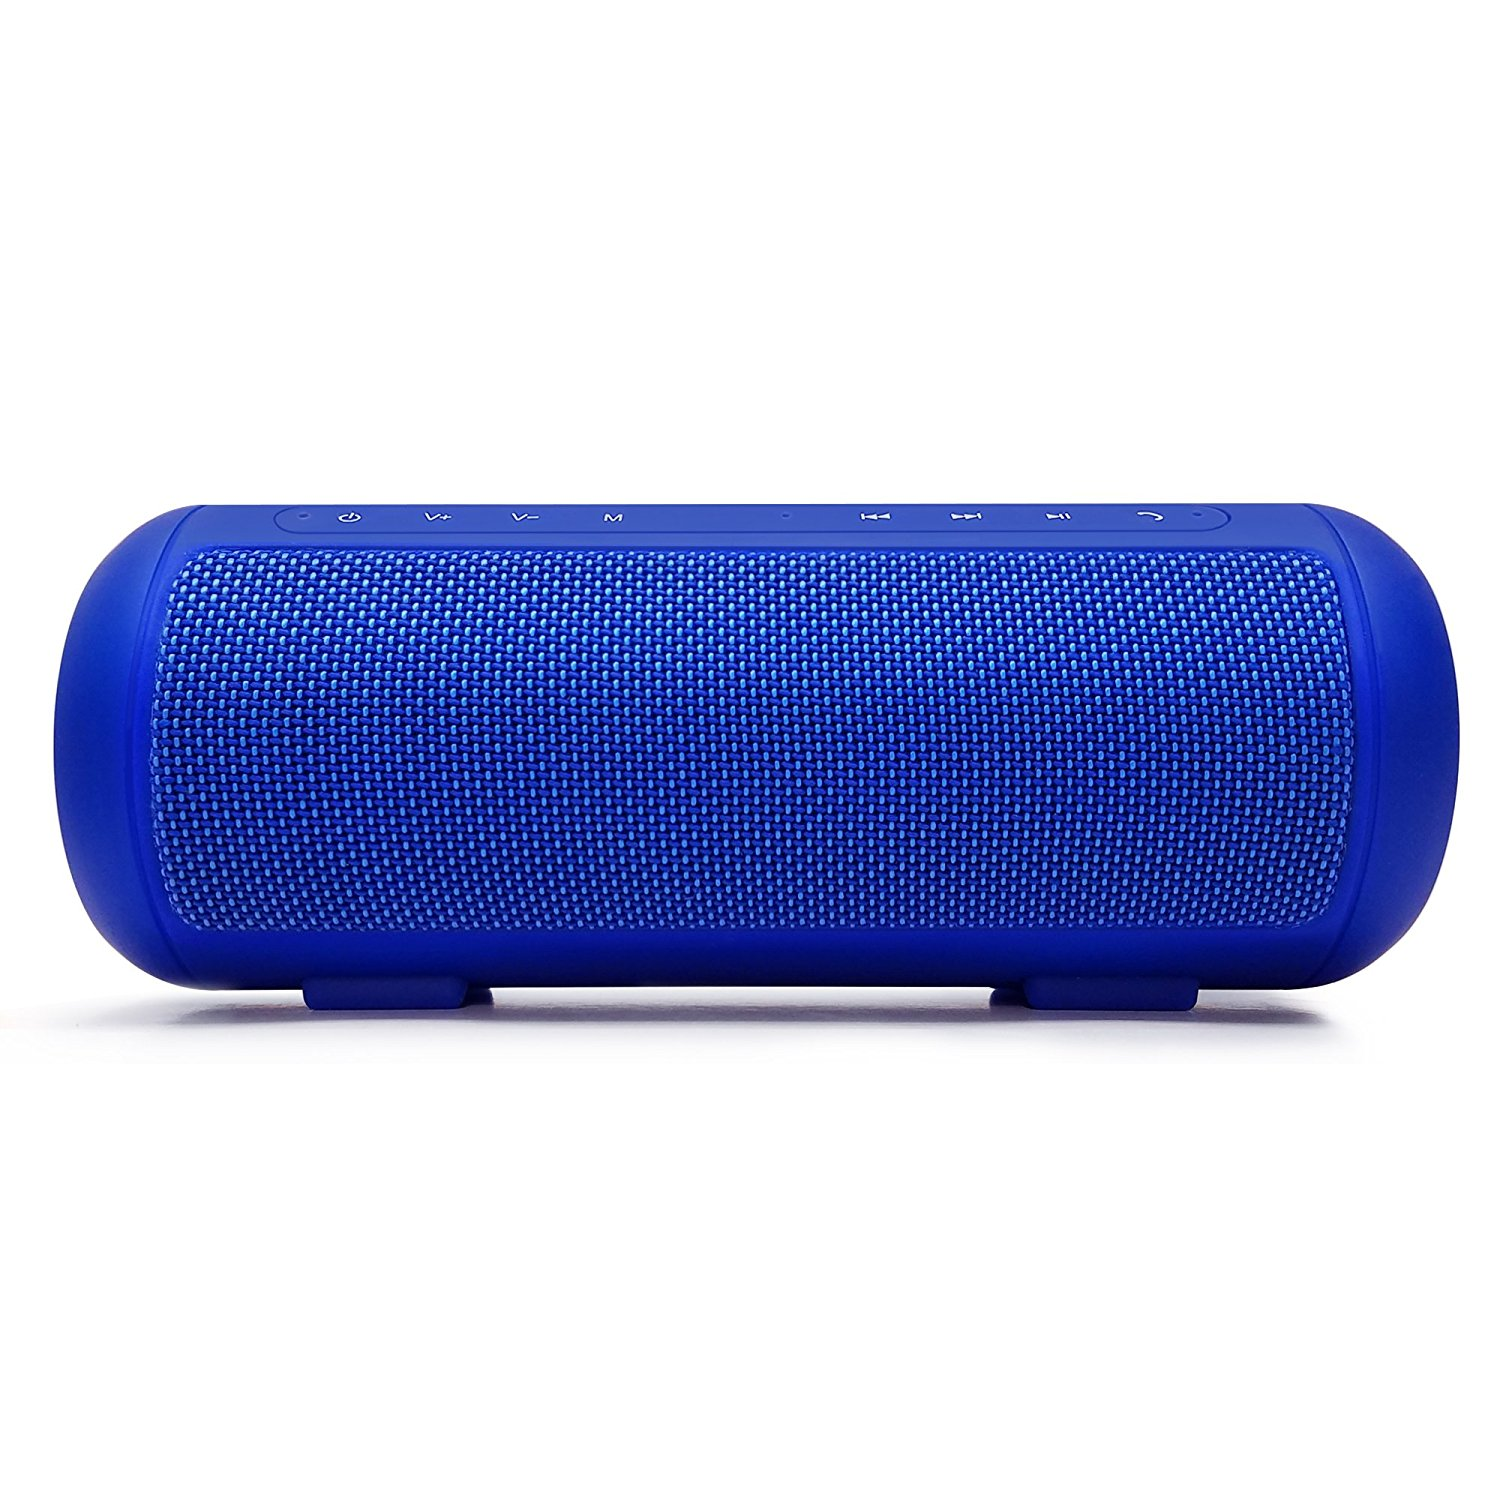 Photive Cobalt Portable Wireless Bluetooth Speaker 10W Bluetooth Power with Passive Subwoofers